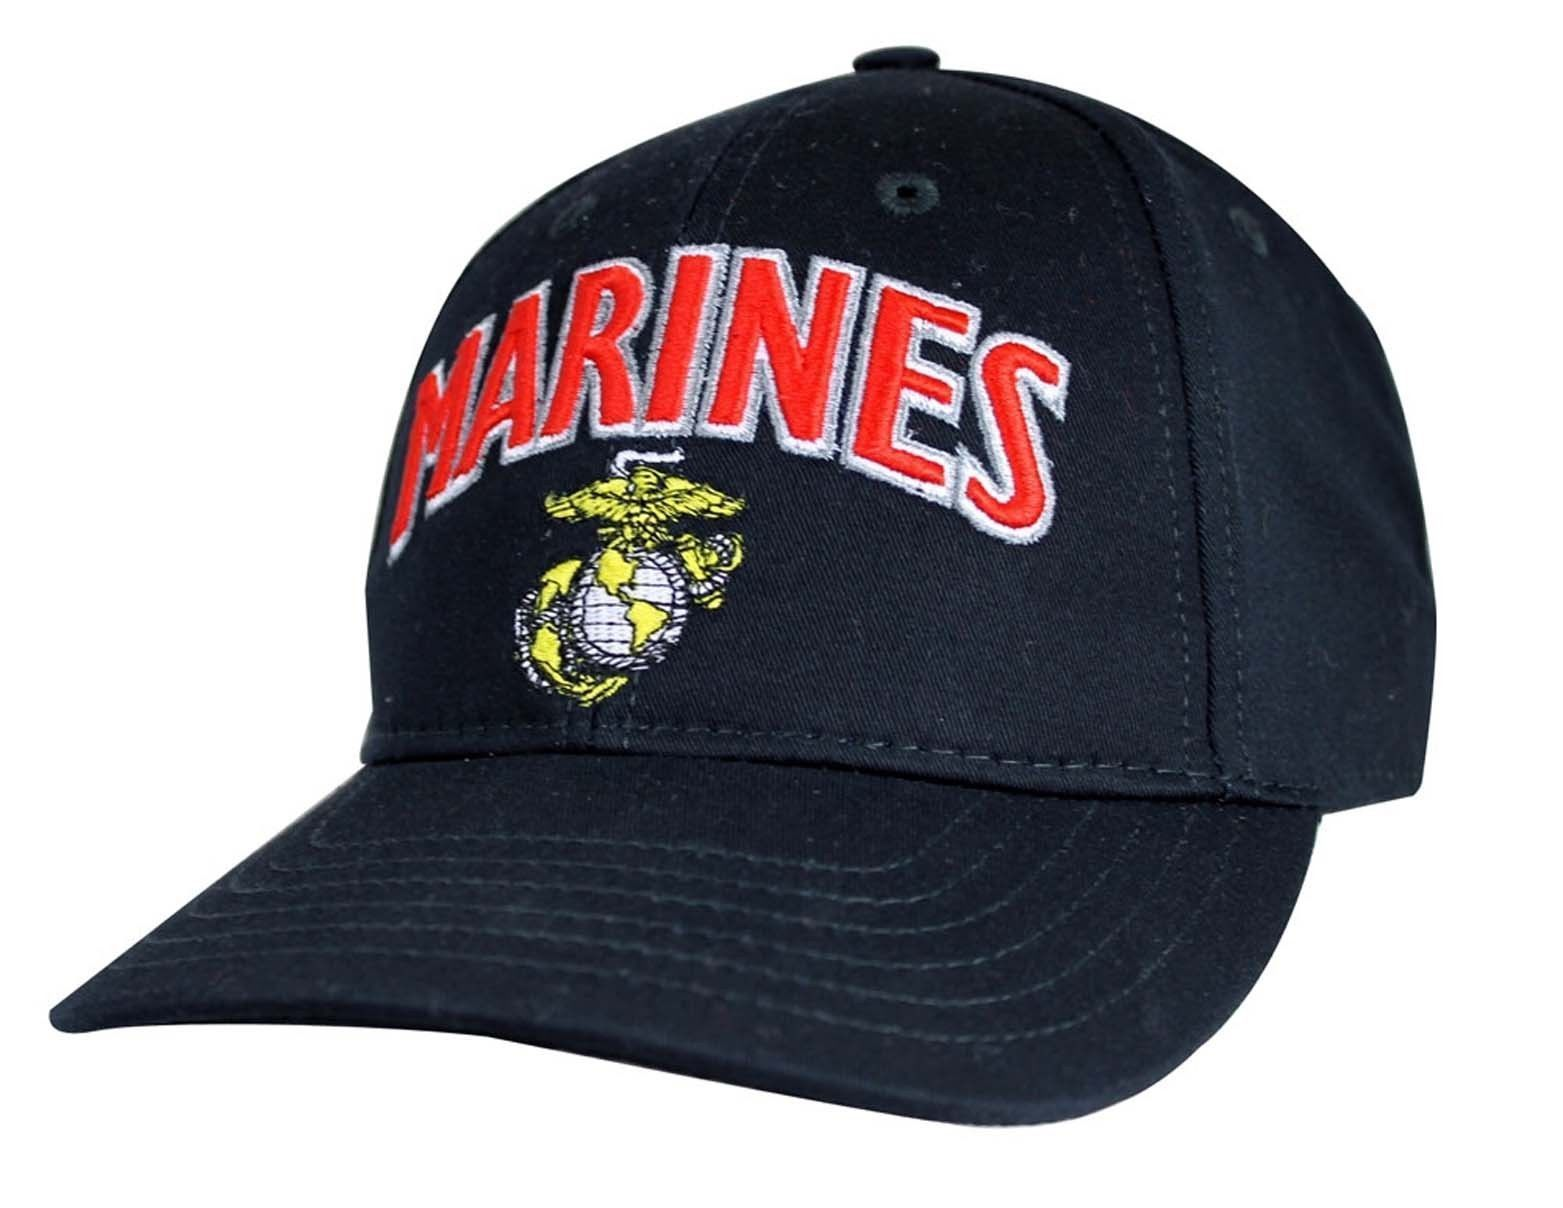 US MARINE U.S.M.C. Made In USA Officially Licensed Military Hat Baseball Cap